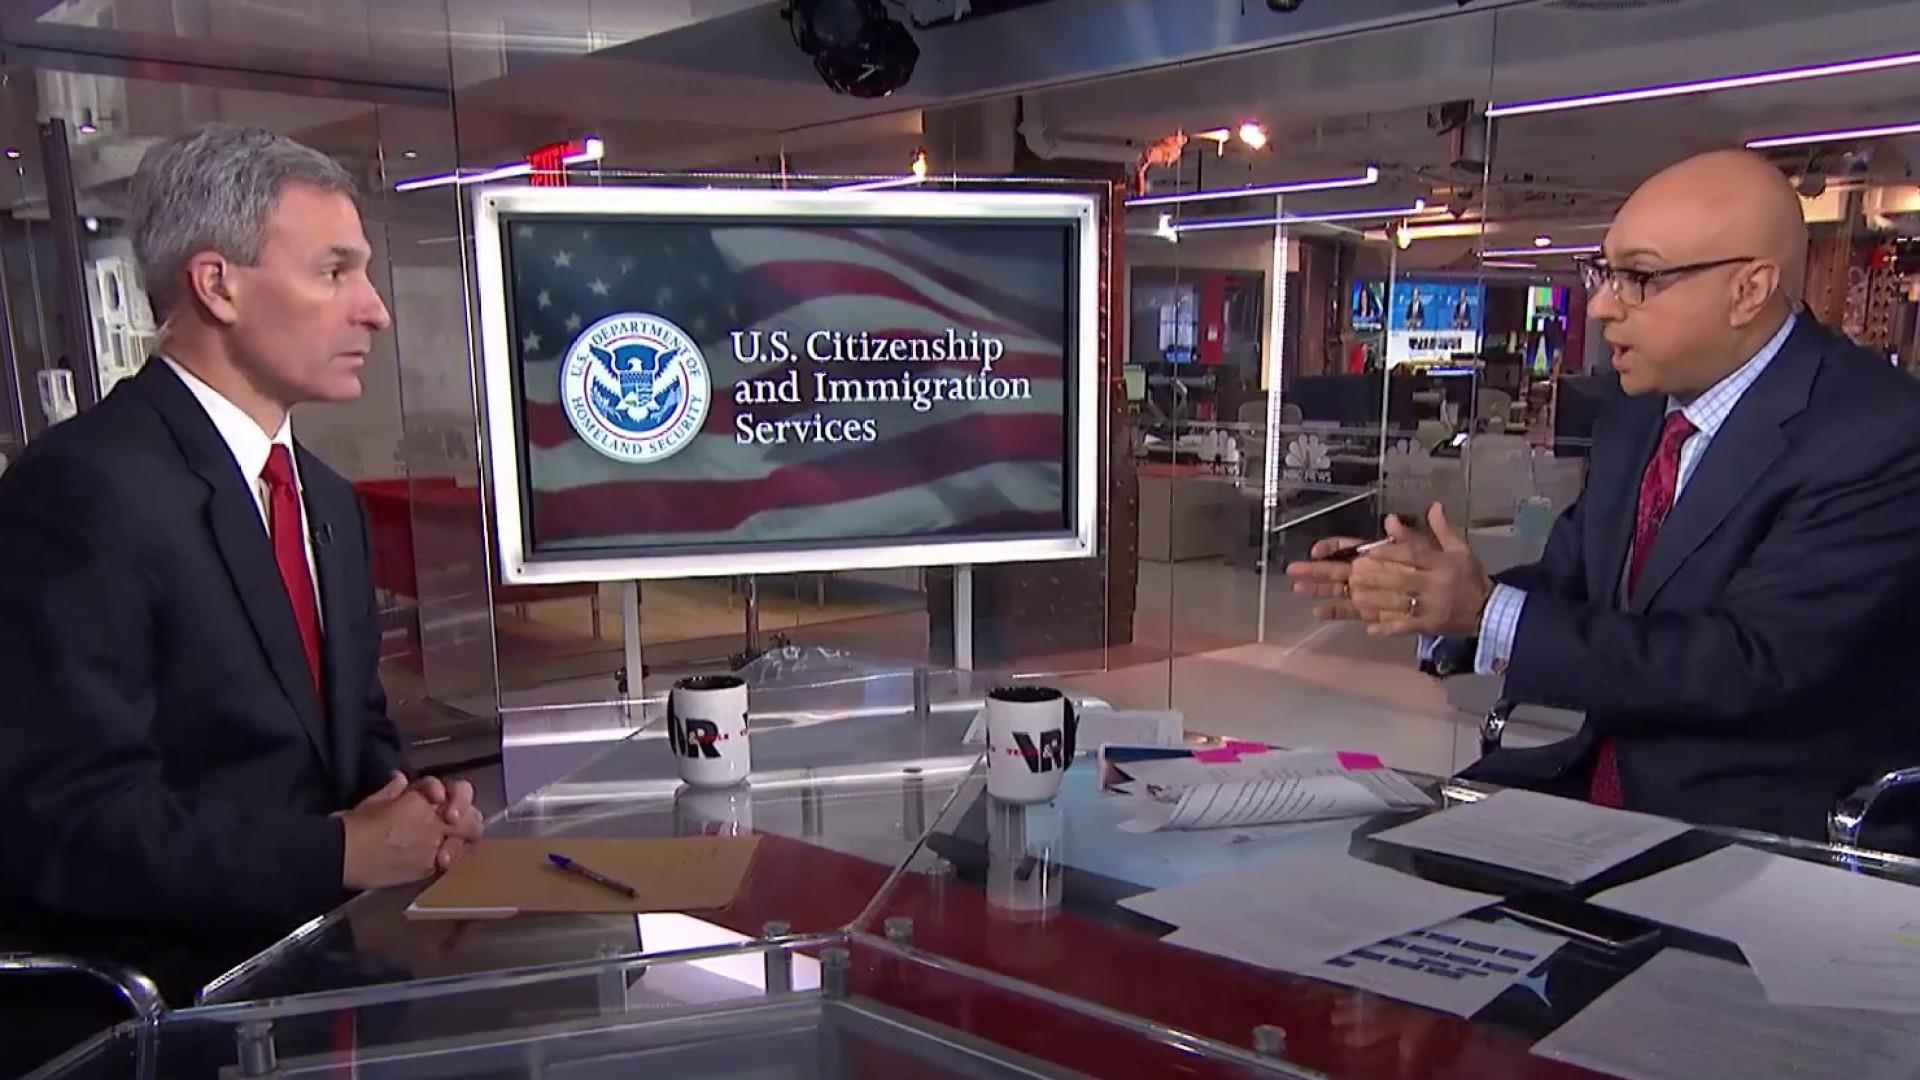 Cuccinelli: There is a clogged pipeline of people seeking asylum